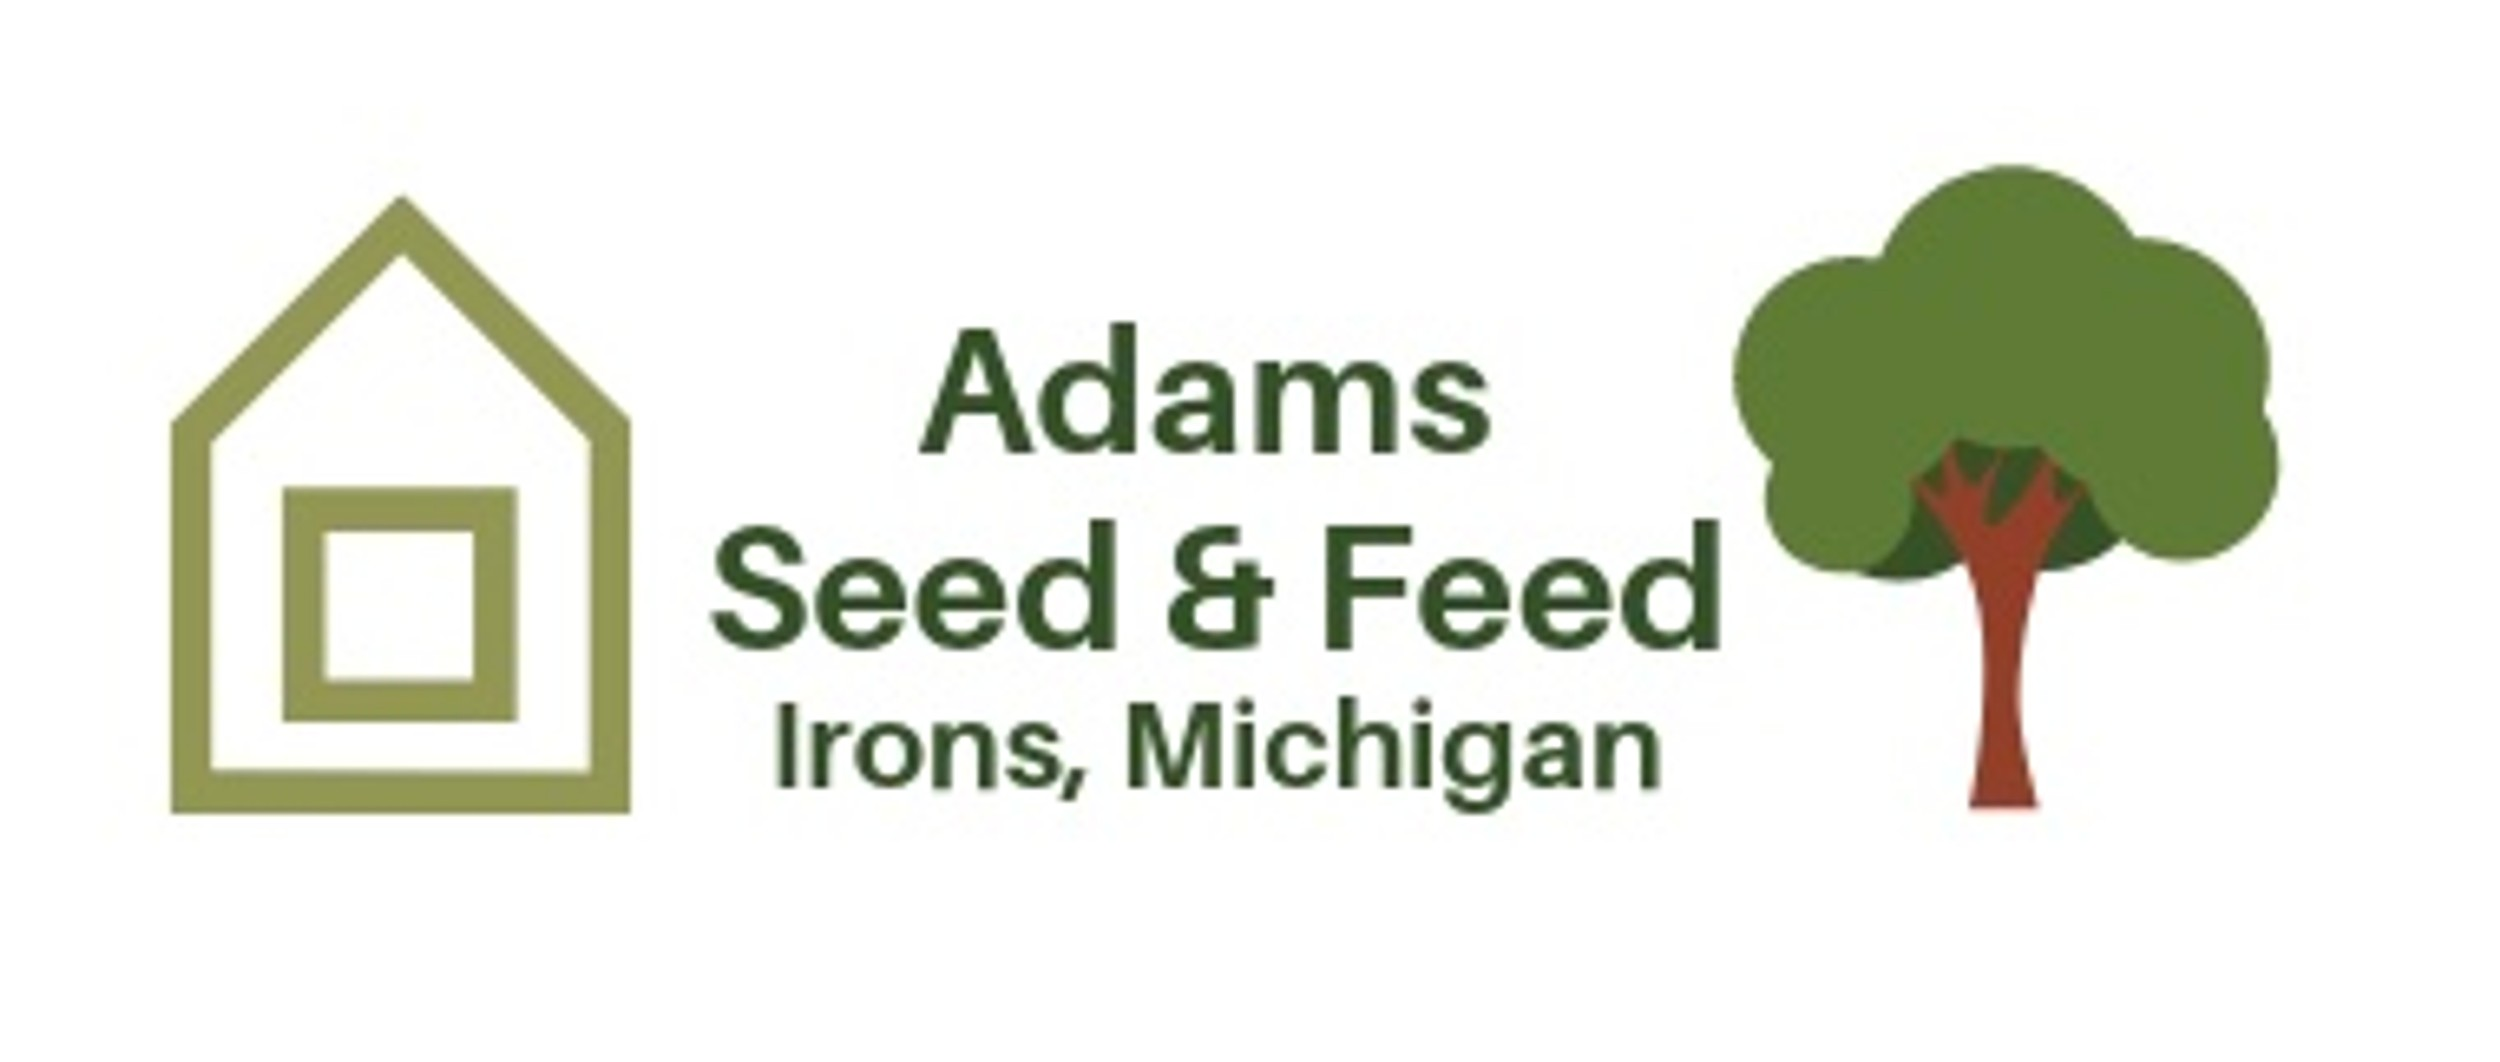 Adams Feed and Pet Supplies available in North Carolina